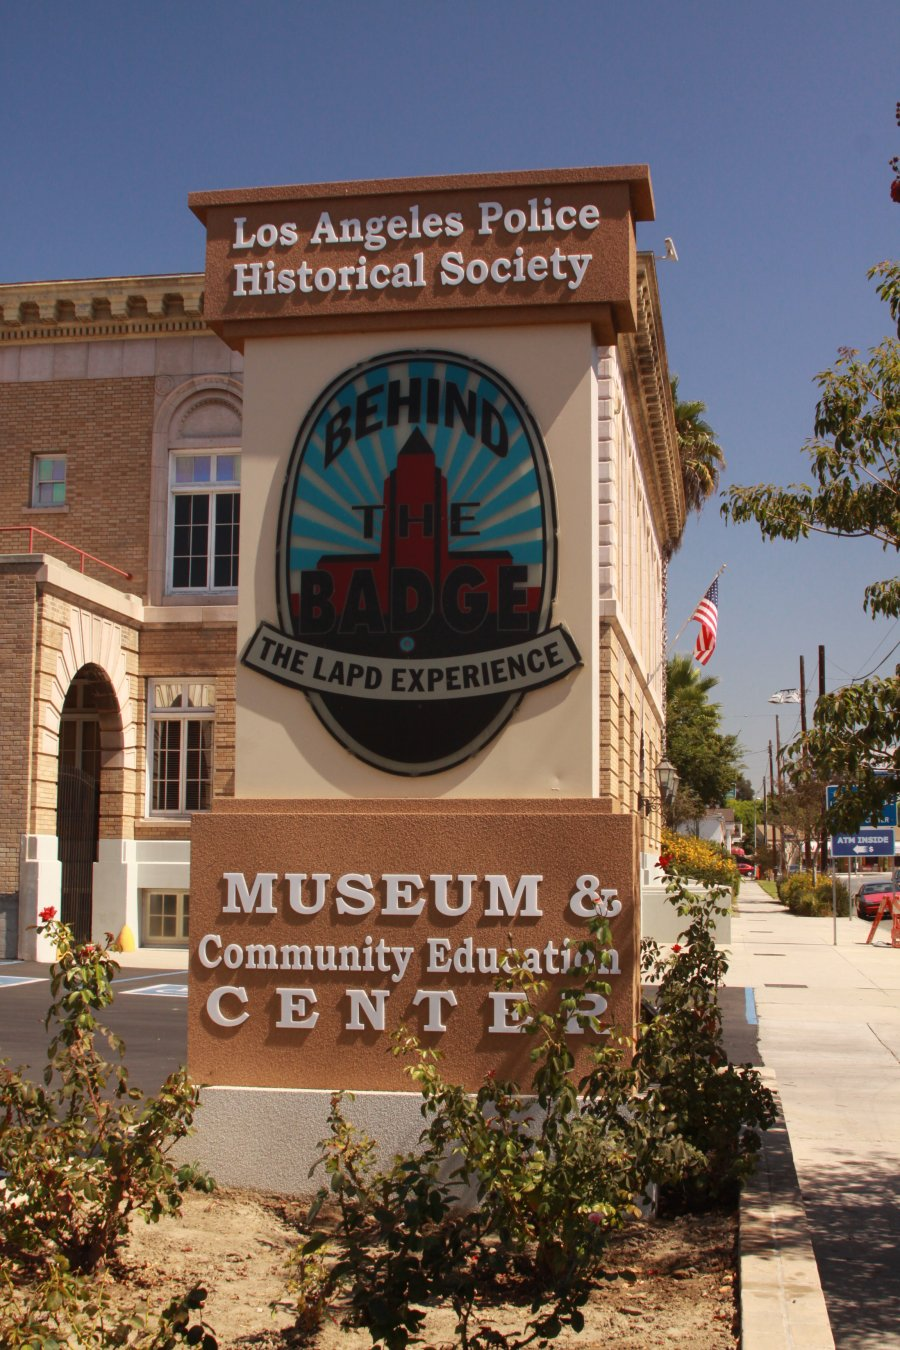 LAPD Museum North Hollywood http://www.pic2fly.com/LAPD+Museum+North+Hollywood.html